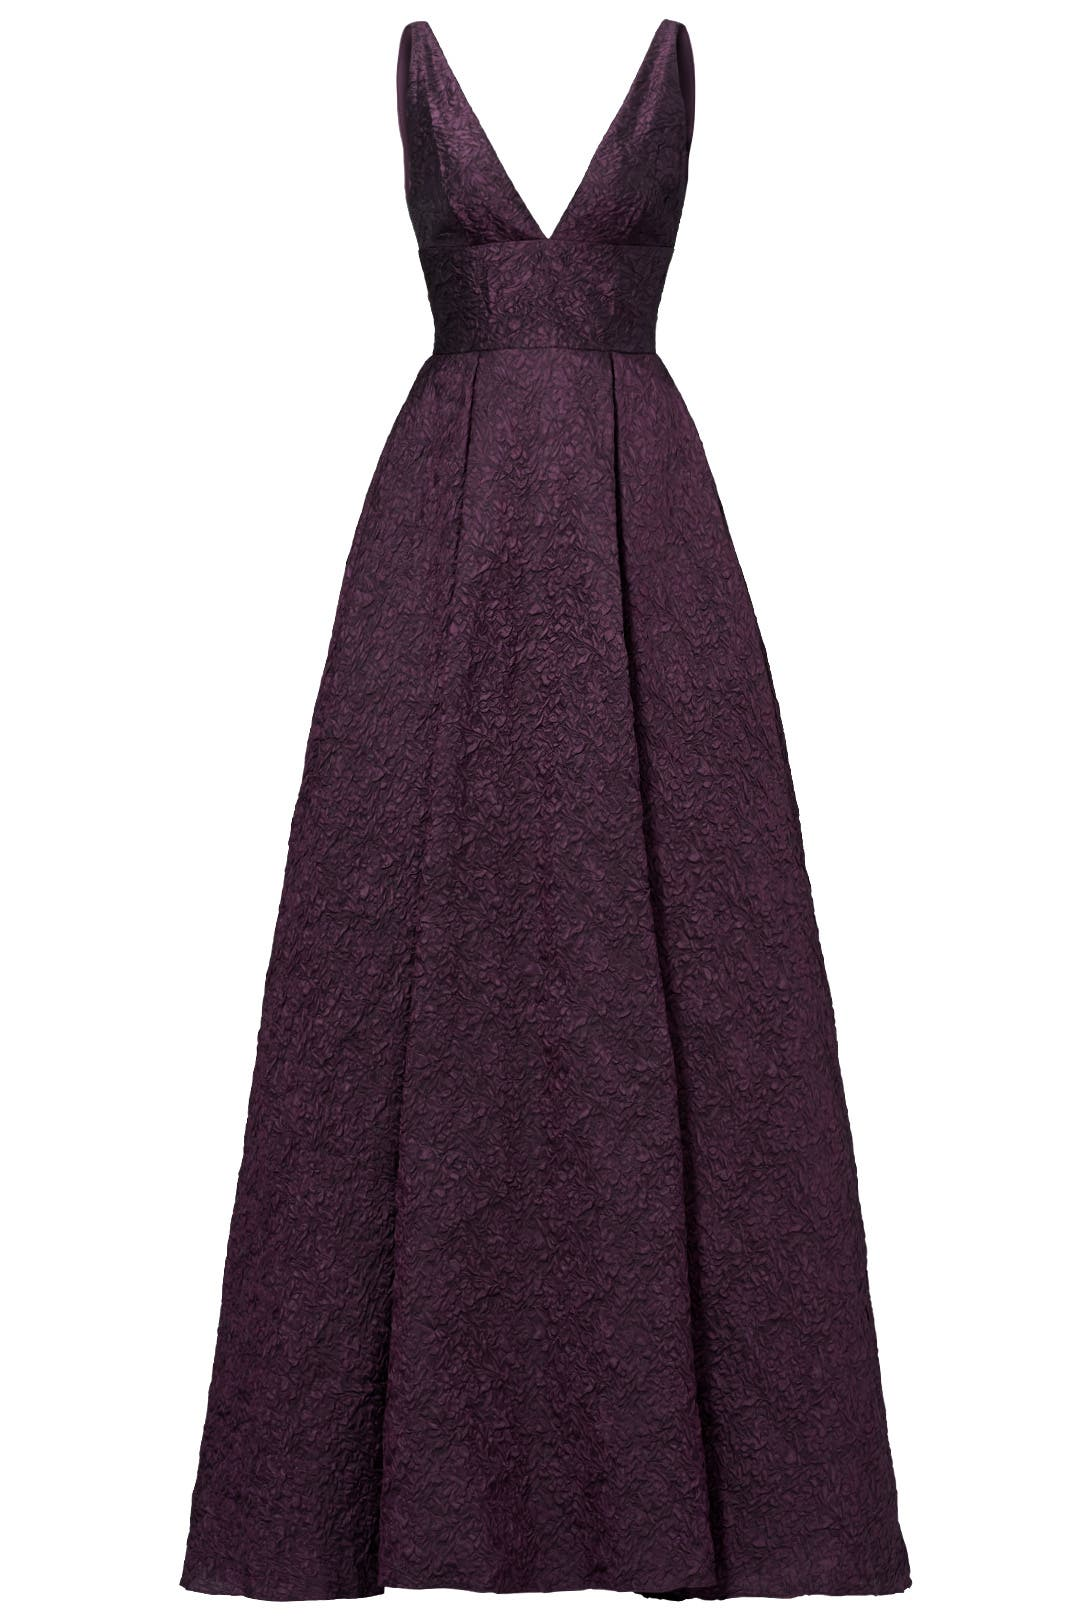 Burgundy Center Stage Gown By Ml Monique Lhuillier For